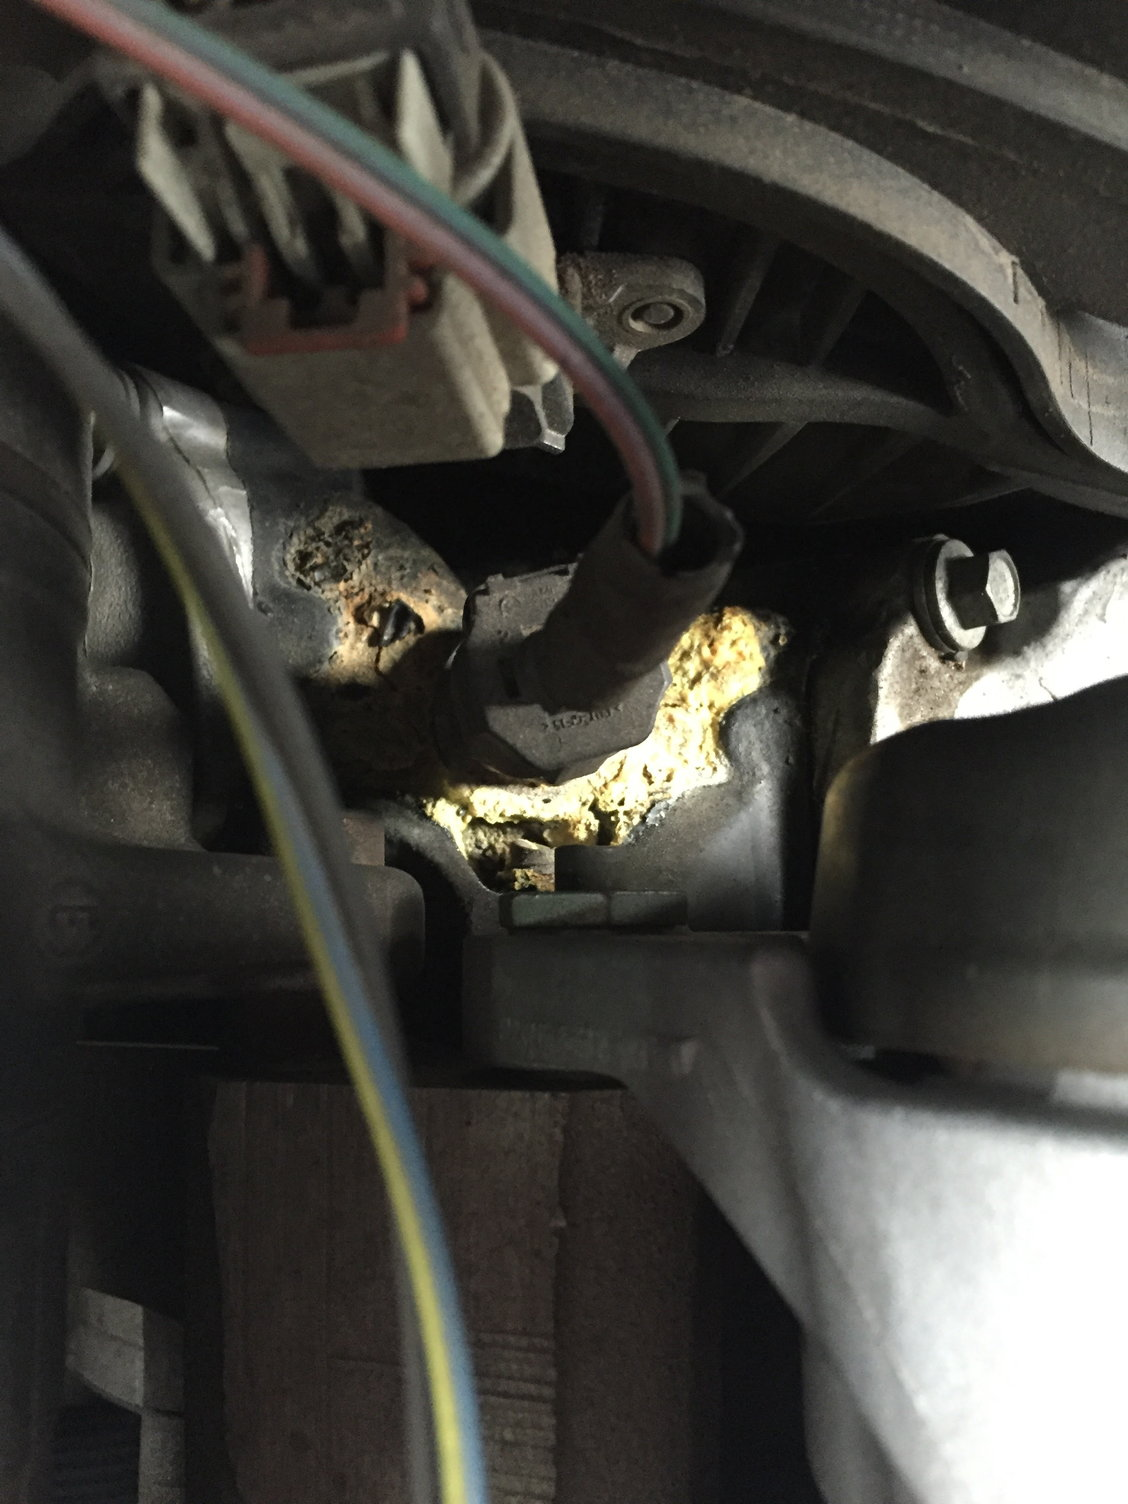 any ideas on how to fix?